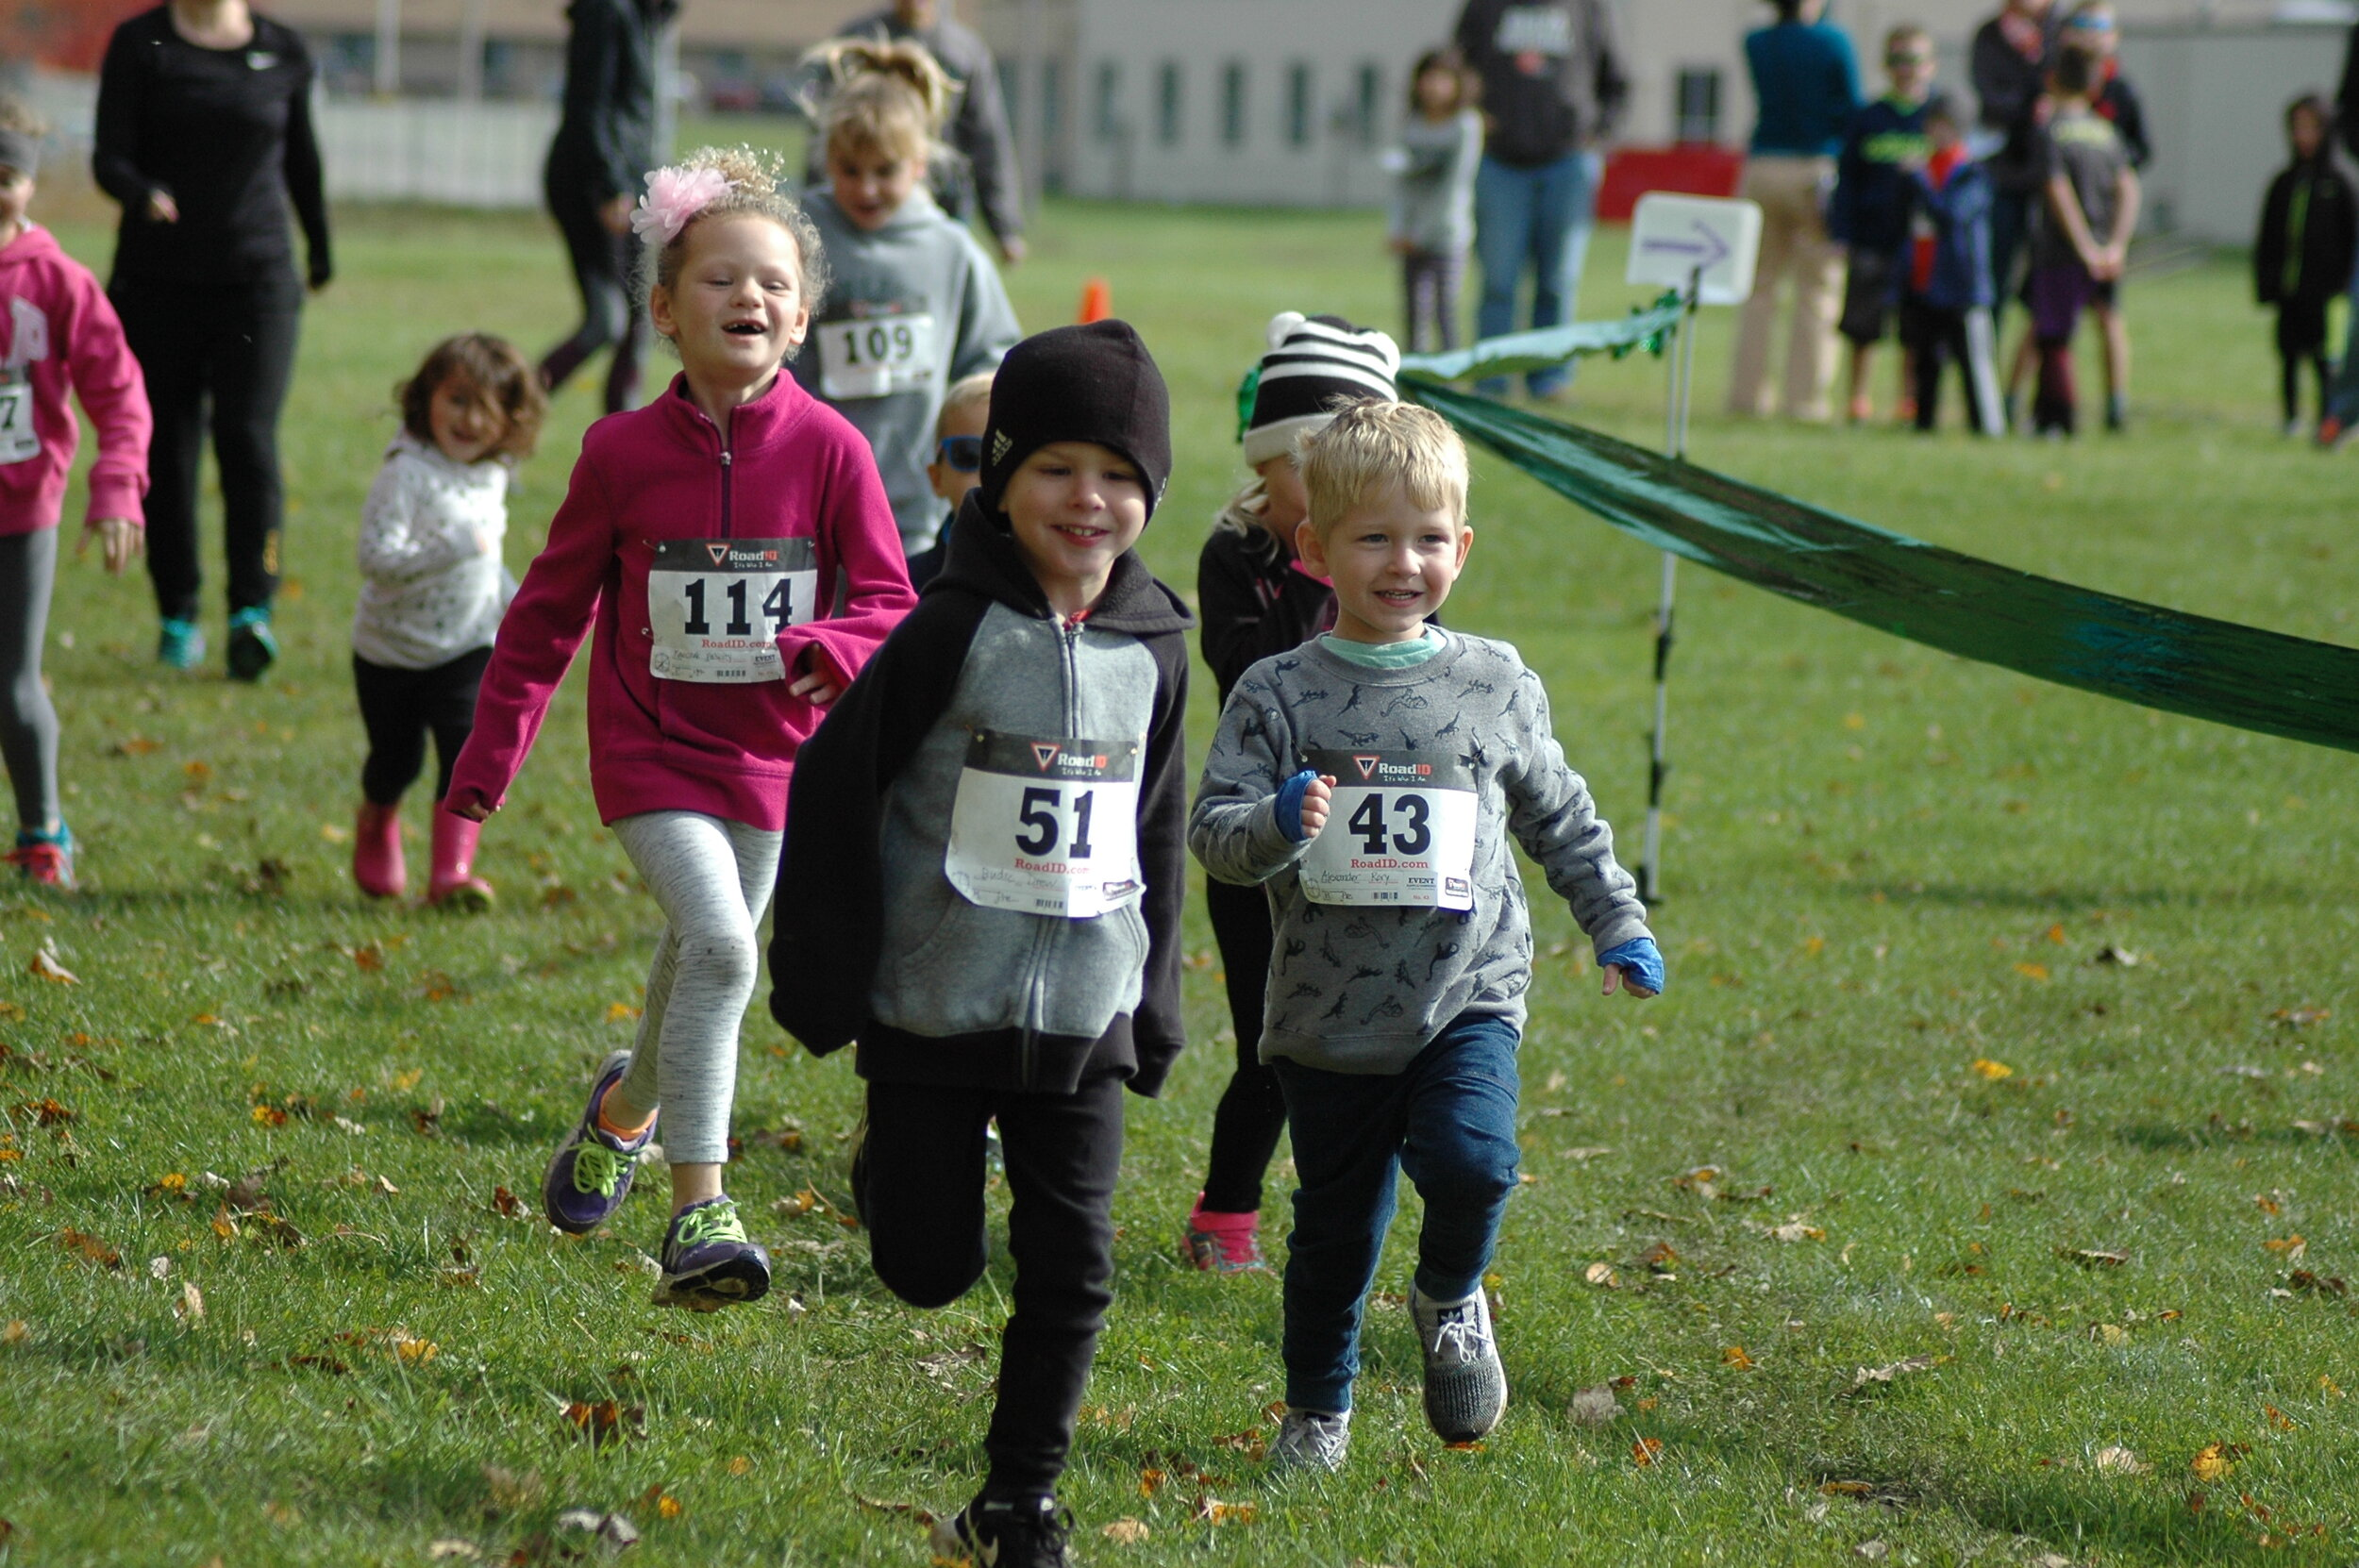 """We really mean it when we call it a """"Fun Run""""!"""